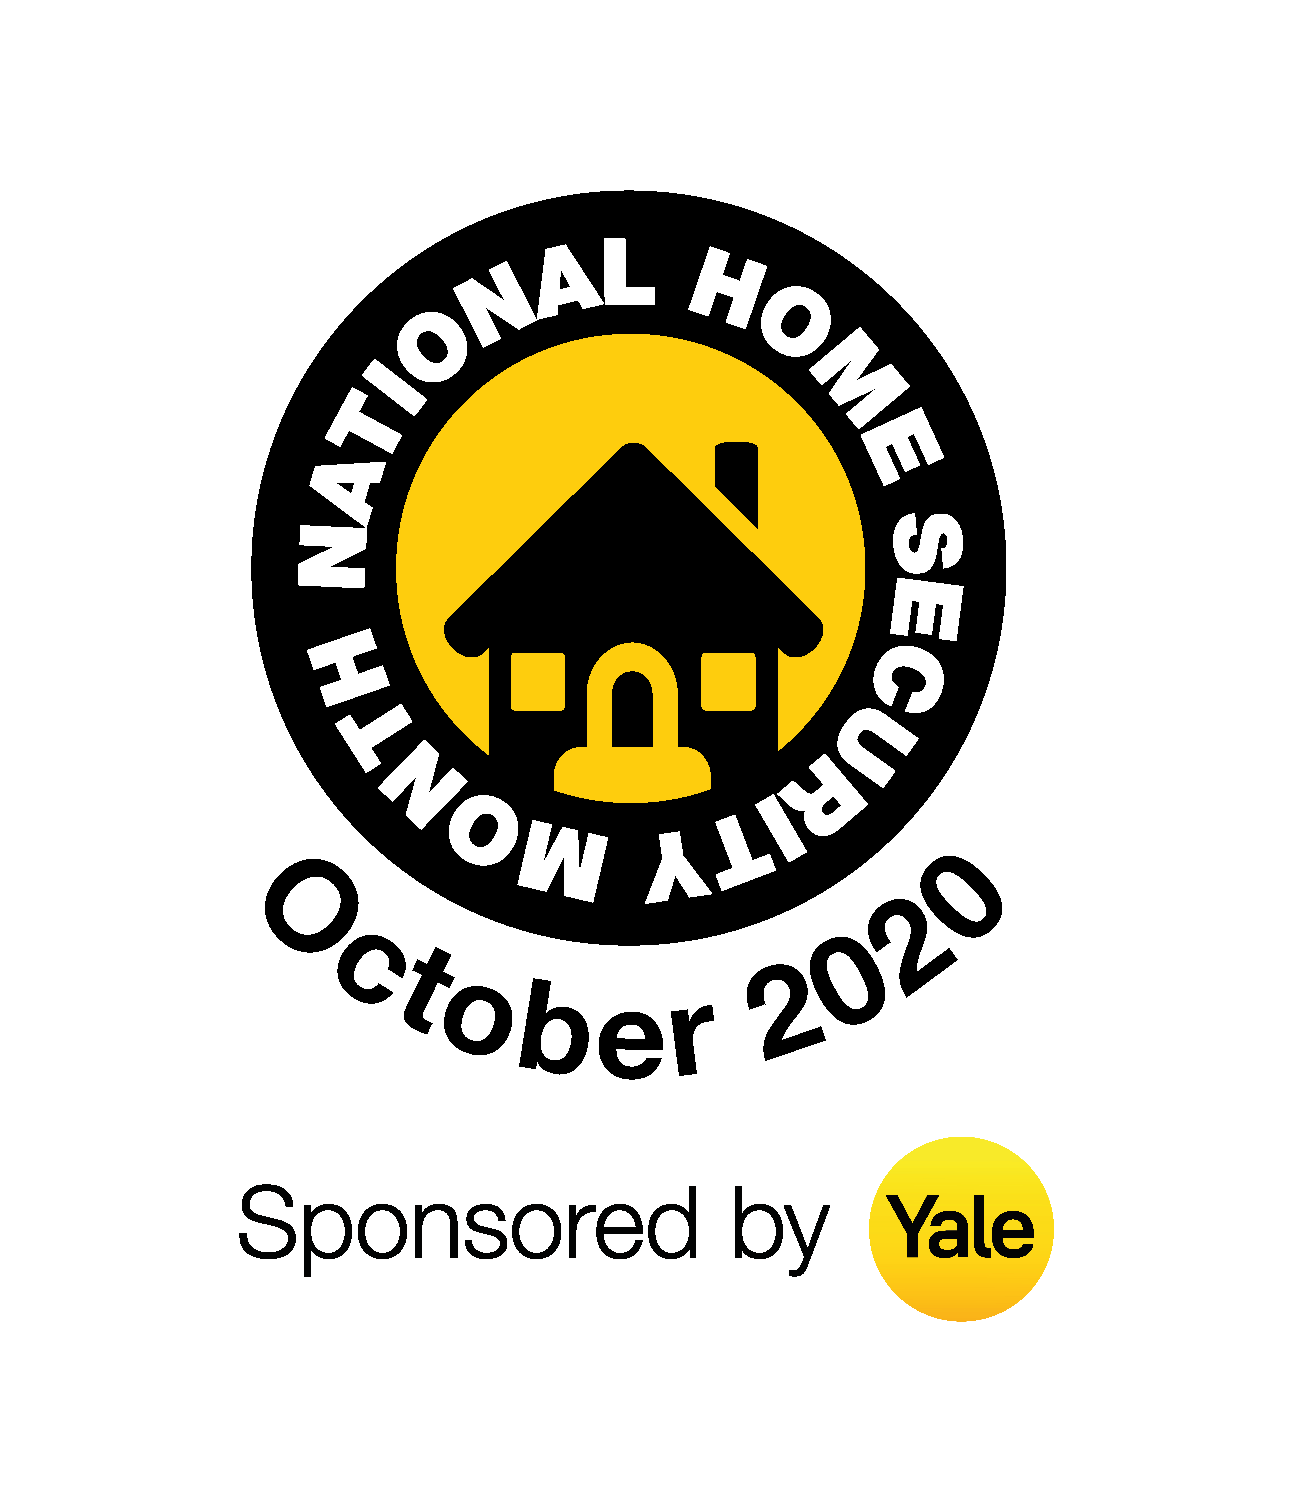 National Home Security Month is back!